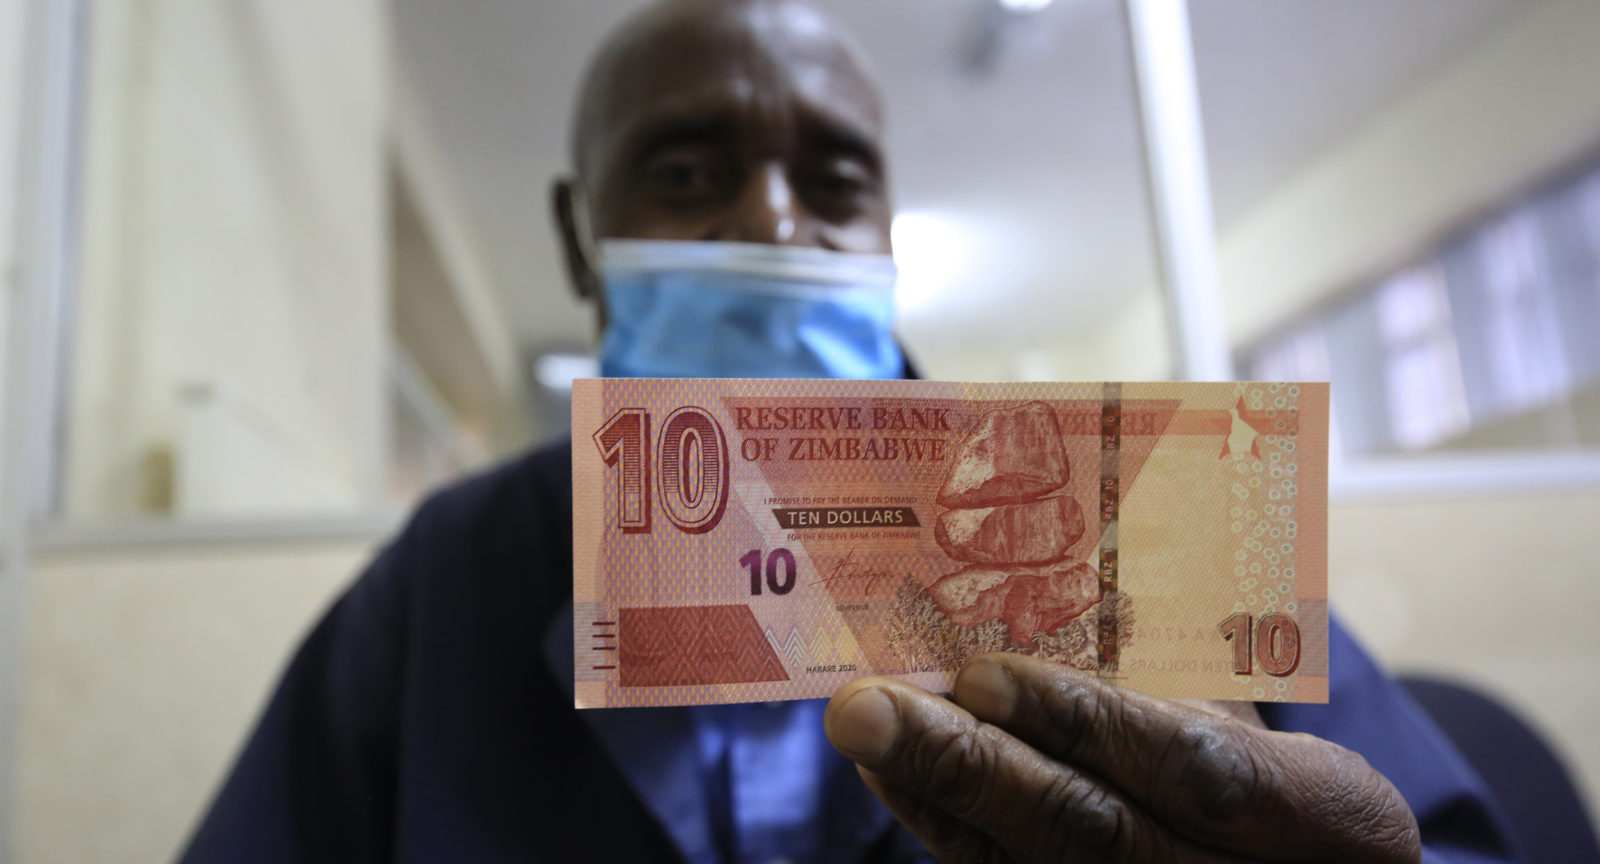 Zimbabwe government views Covid-19 crisis as an opportunity to loot new donor funds